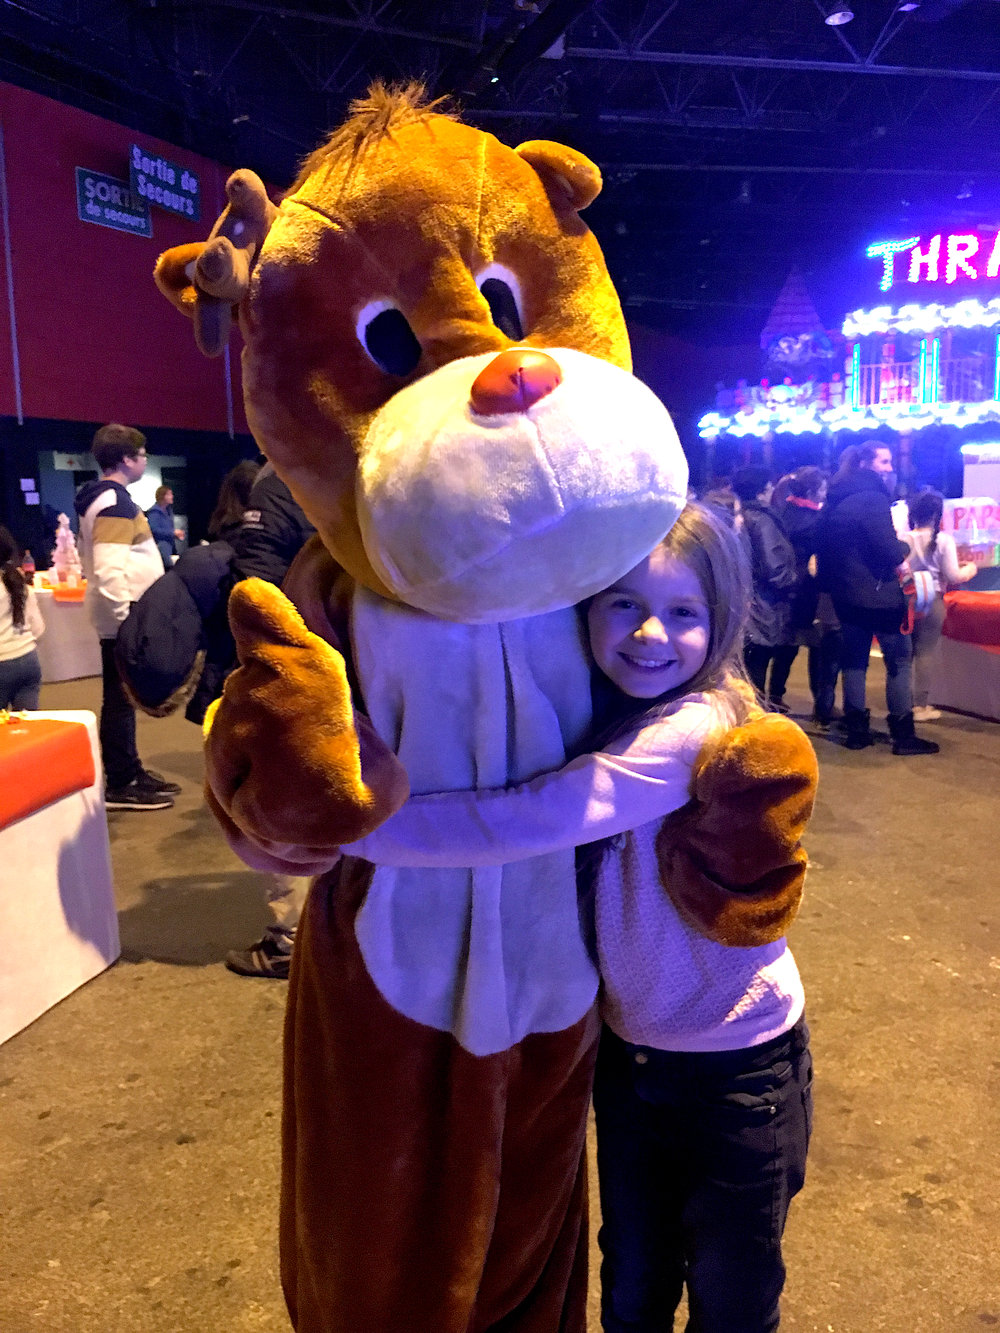 Elma, the young girl from CAES, poses with a costumed worker at the La Fête de Foraine, a fun-fair coordinated by local non-profit organizations. Photo courtesy: Amy Nakamura.